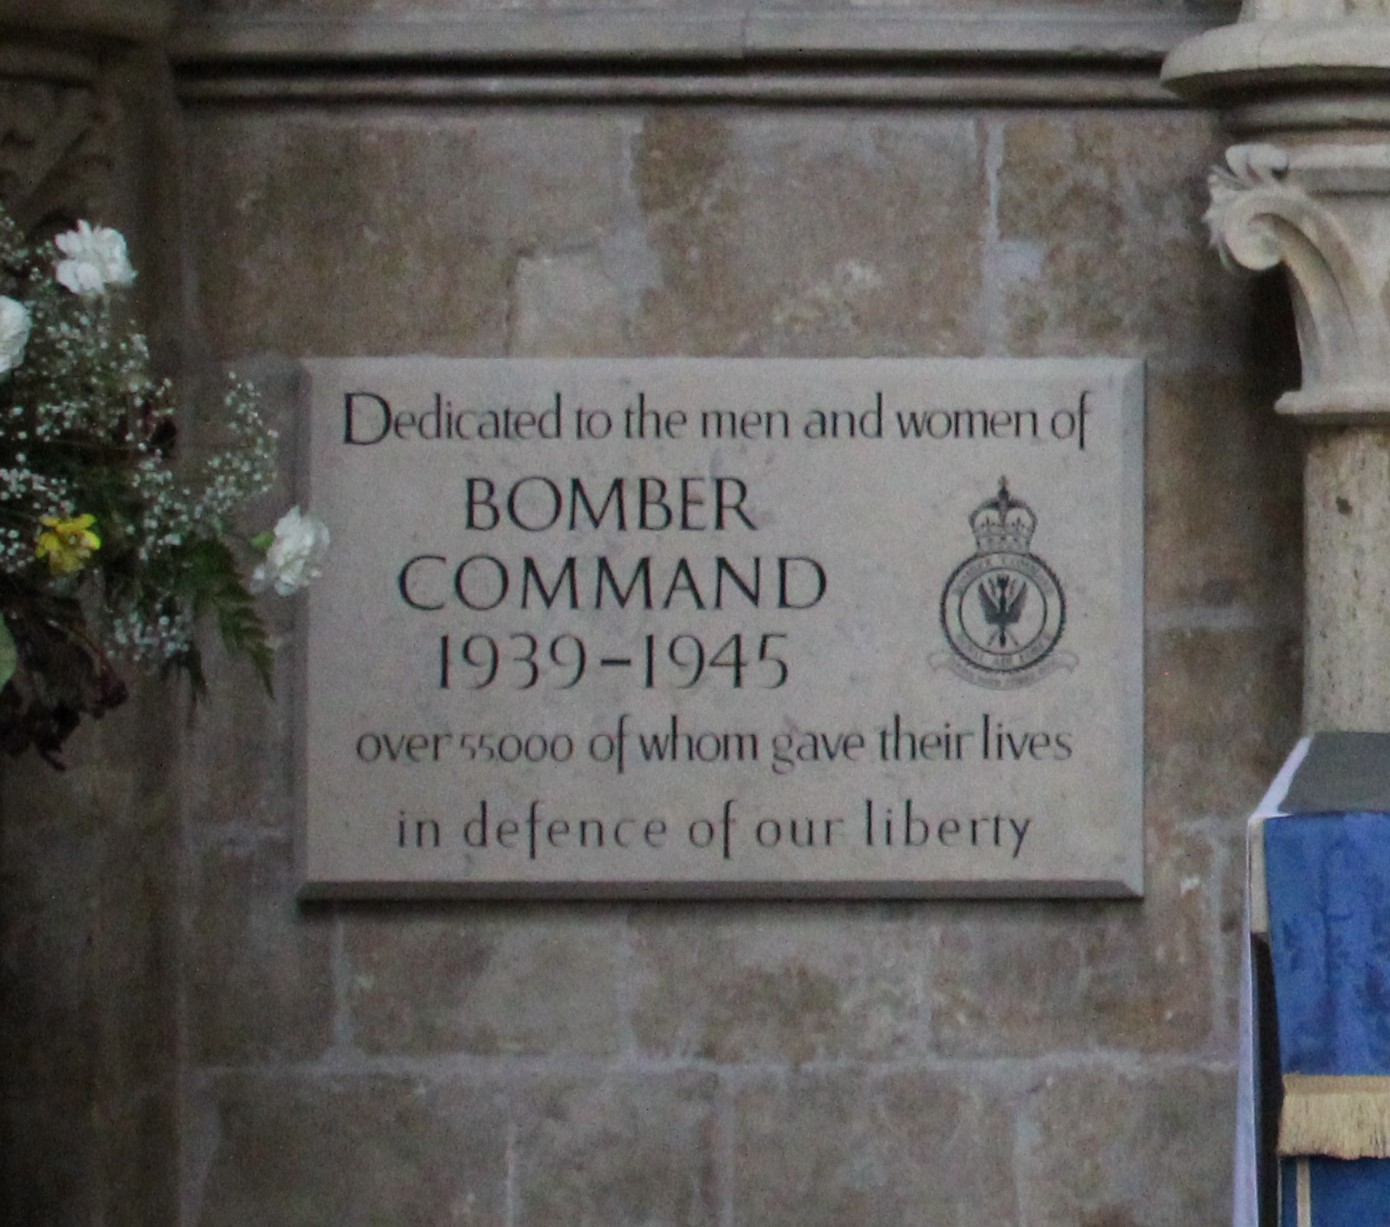 Memorial plaque to Bomber Command in Lincoln Cathedral